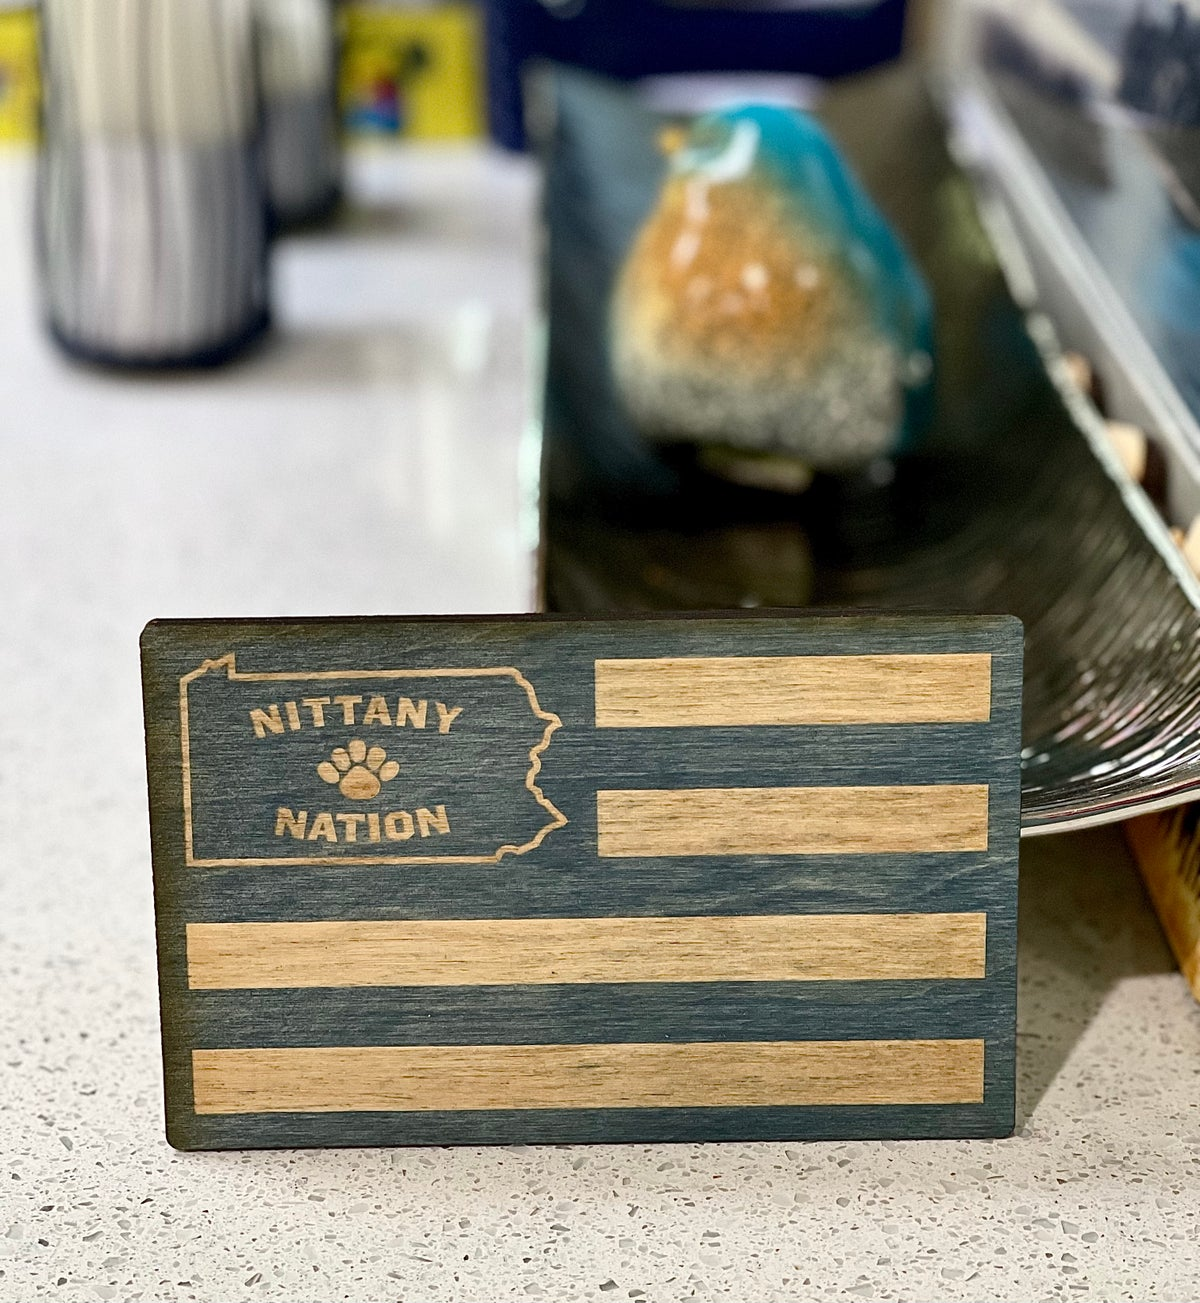 Image of Nittany Nation Wood sign